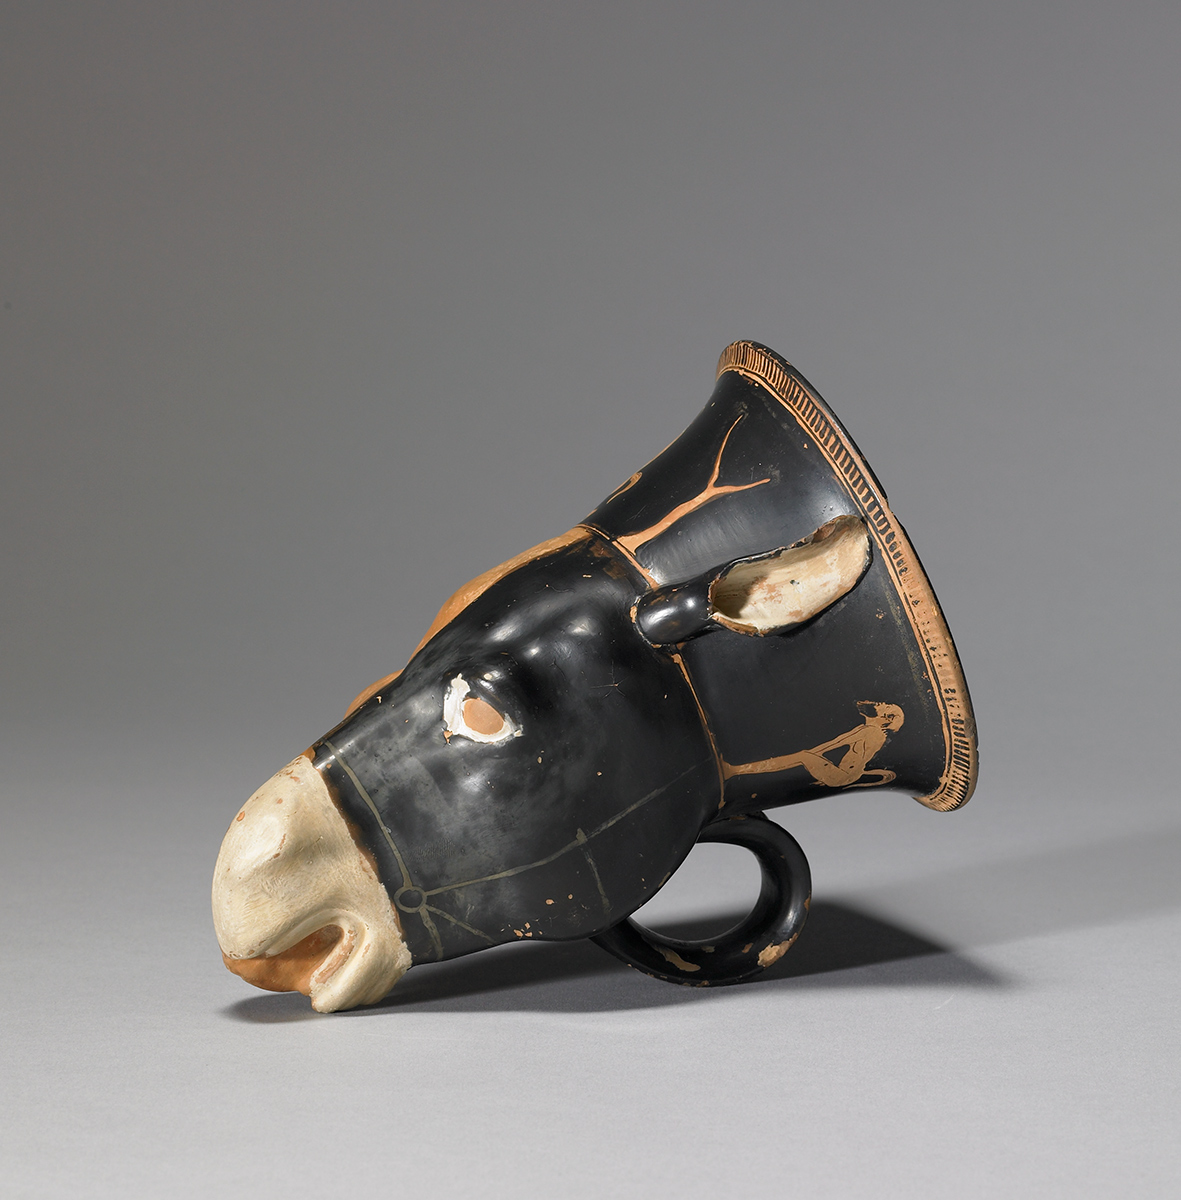 Donkey and ram head mug depicting satyrs, attributed to the Sotades Painter, Greek, Attic, c. 450 BCE. Terracotta, red-figure technique. Walters Art Museum, Baltimore, Museum purchase with funds provided by the S. & A.P Fund, 48.2050.